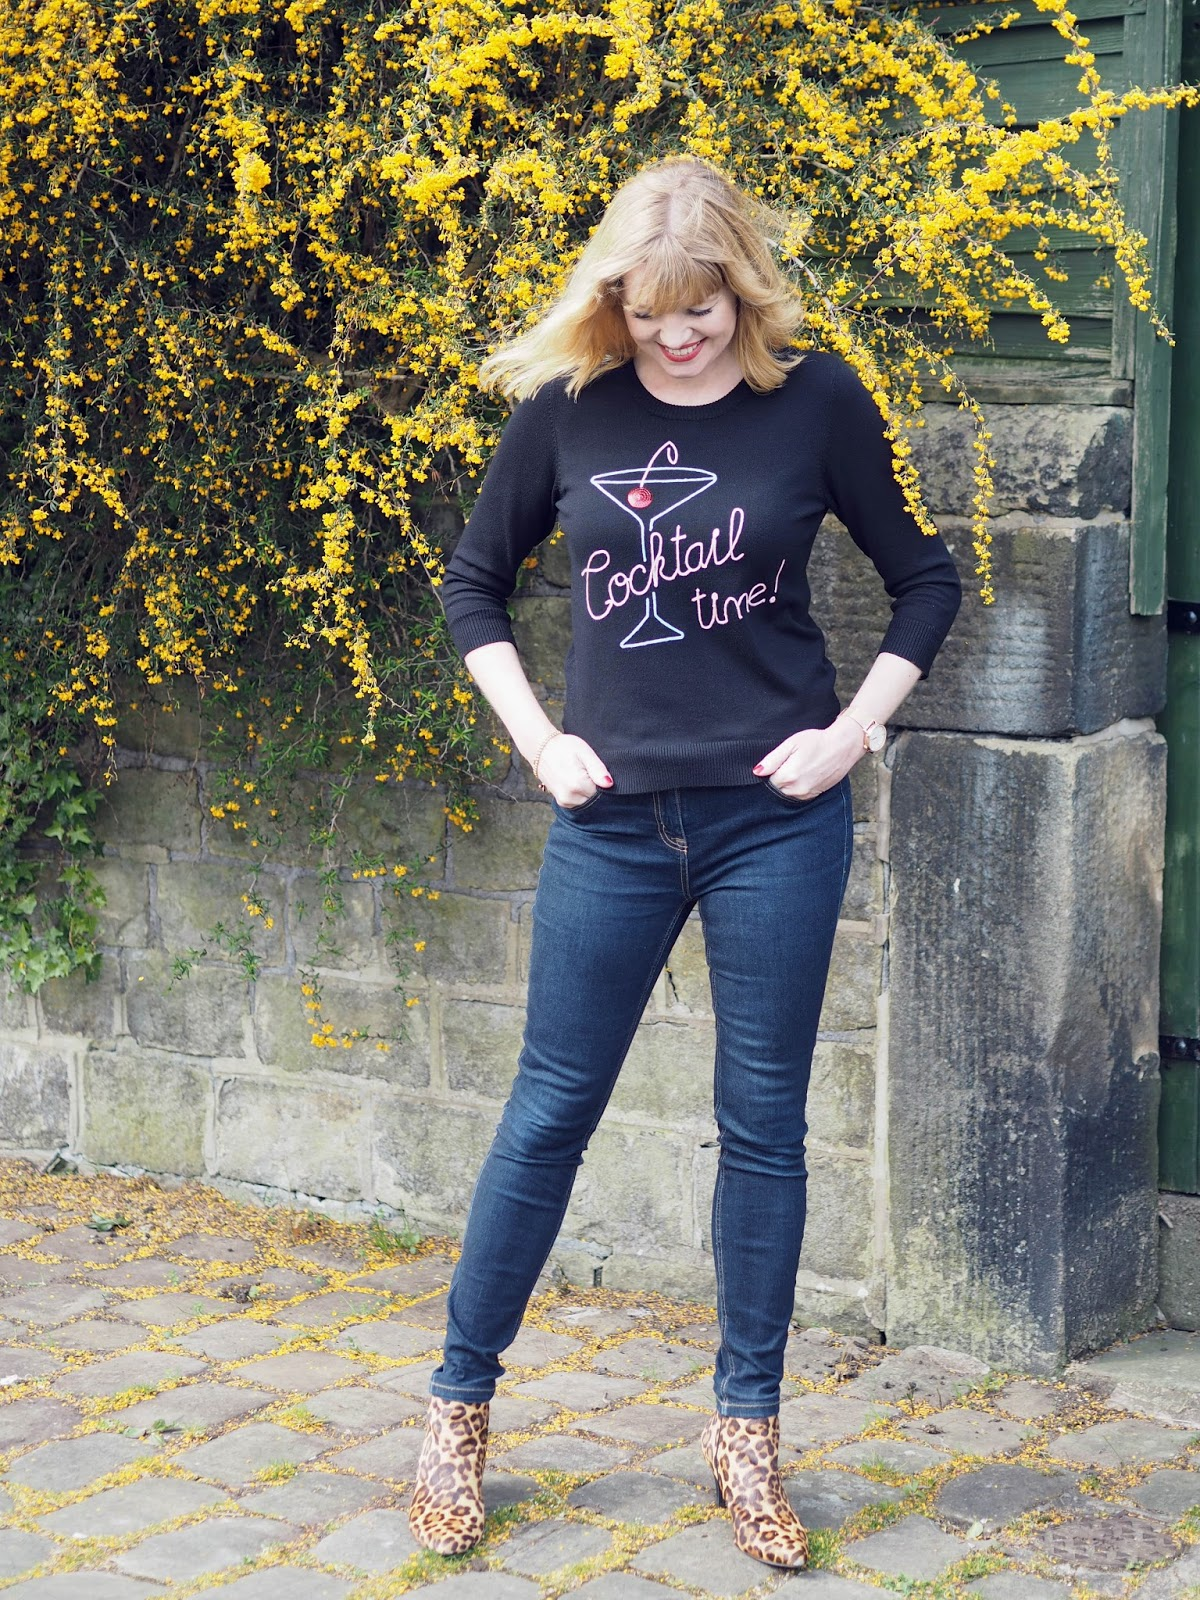 What Lizzy Loves. Cocktail glass logo top worn with skinny jeans and high-heeled leopard print ankle boots